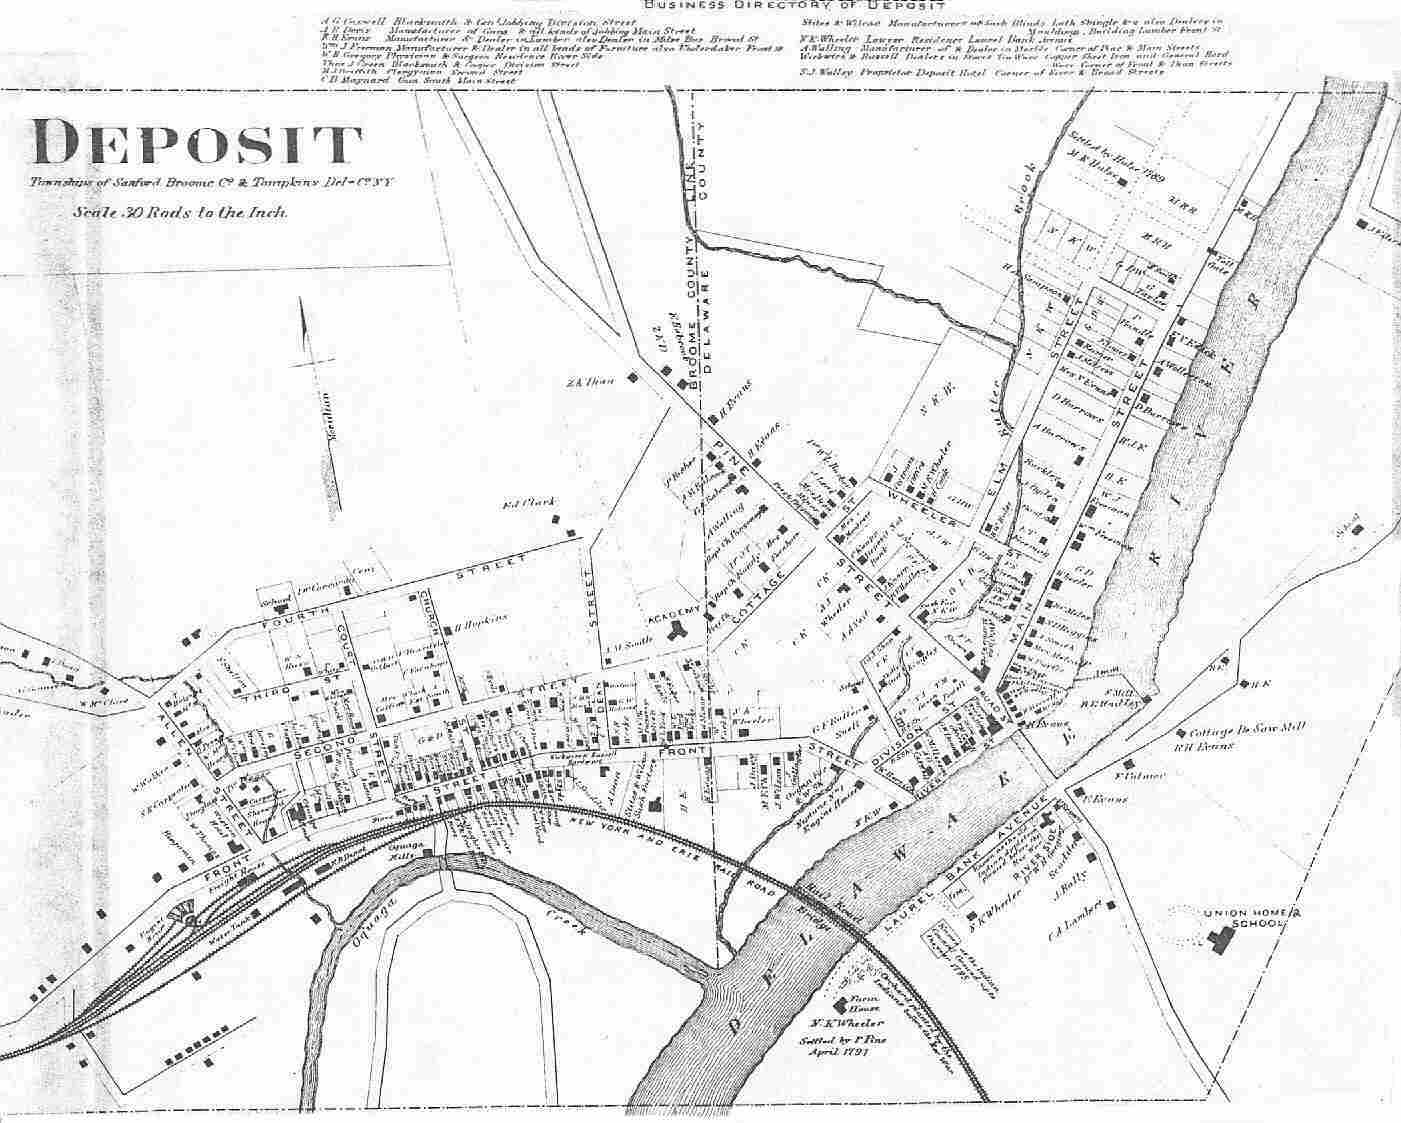 TOWN OF DEPOSIT - 1869 Map of Village of Deposit, Delaware Countydeposit village